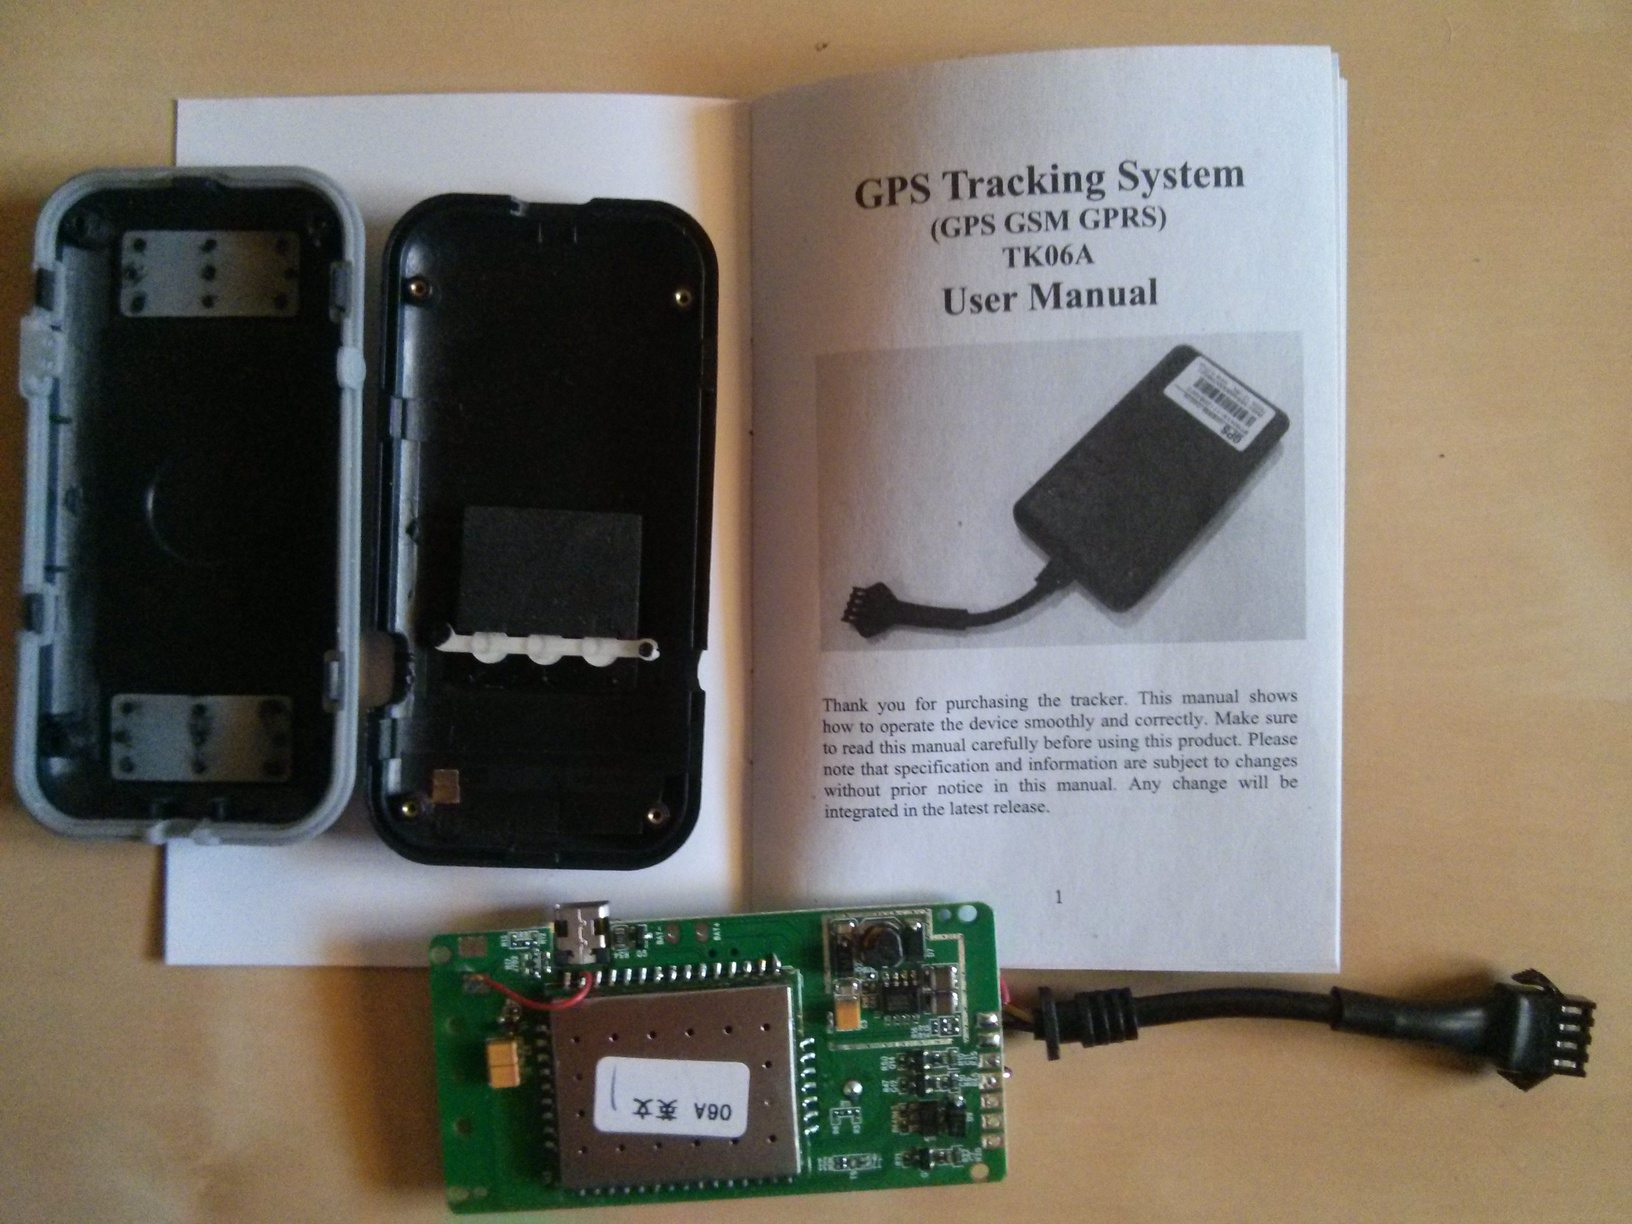 GPS Vehicle Tracker With A Real GPS Receiver – marcusjenkins